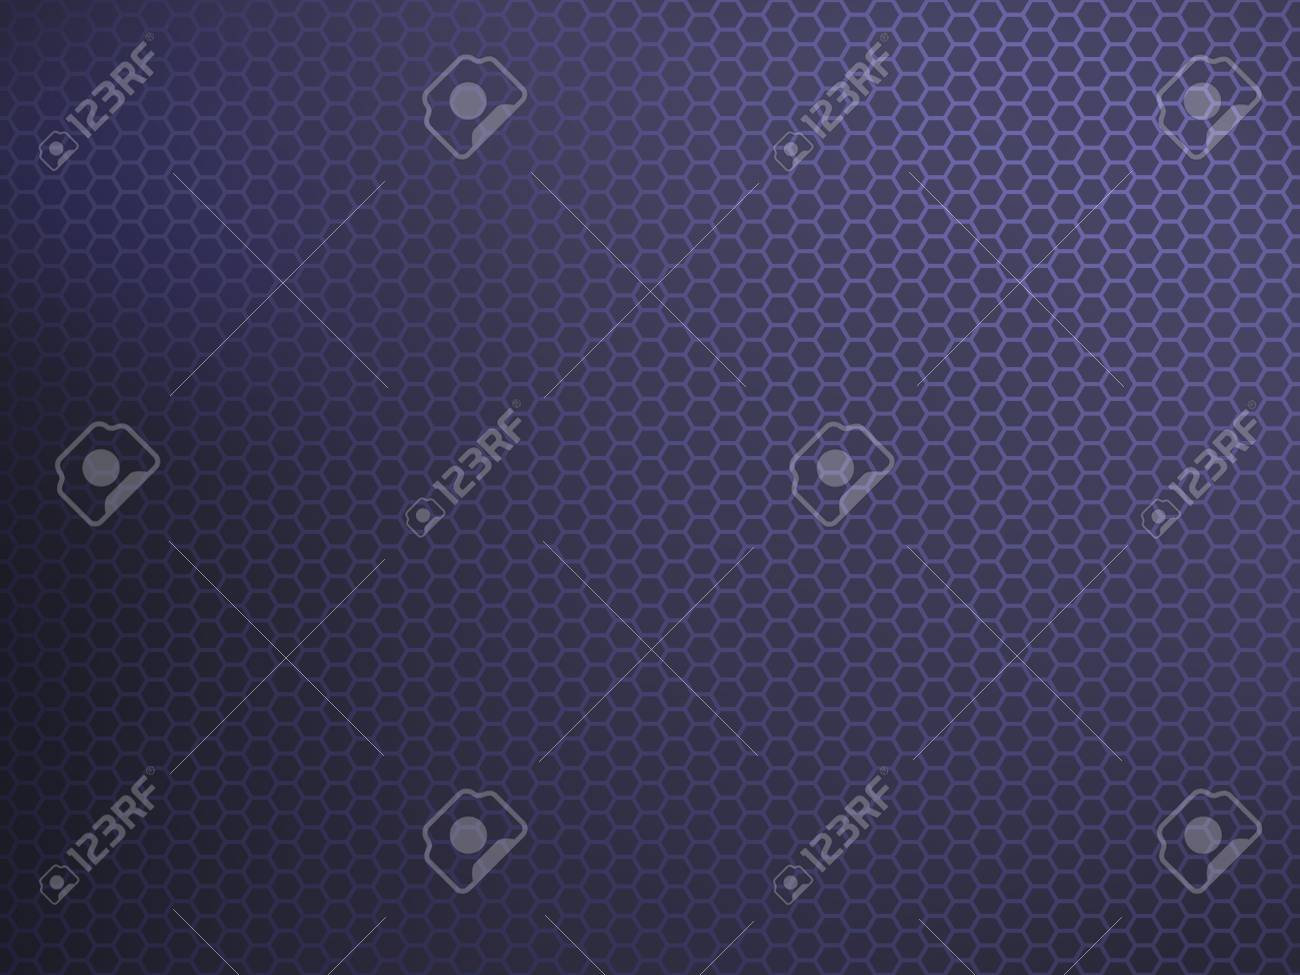 Carbon or fiber background Stock Vector - 17047387